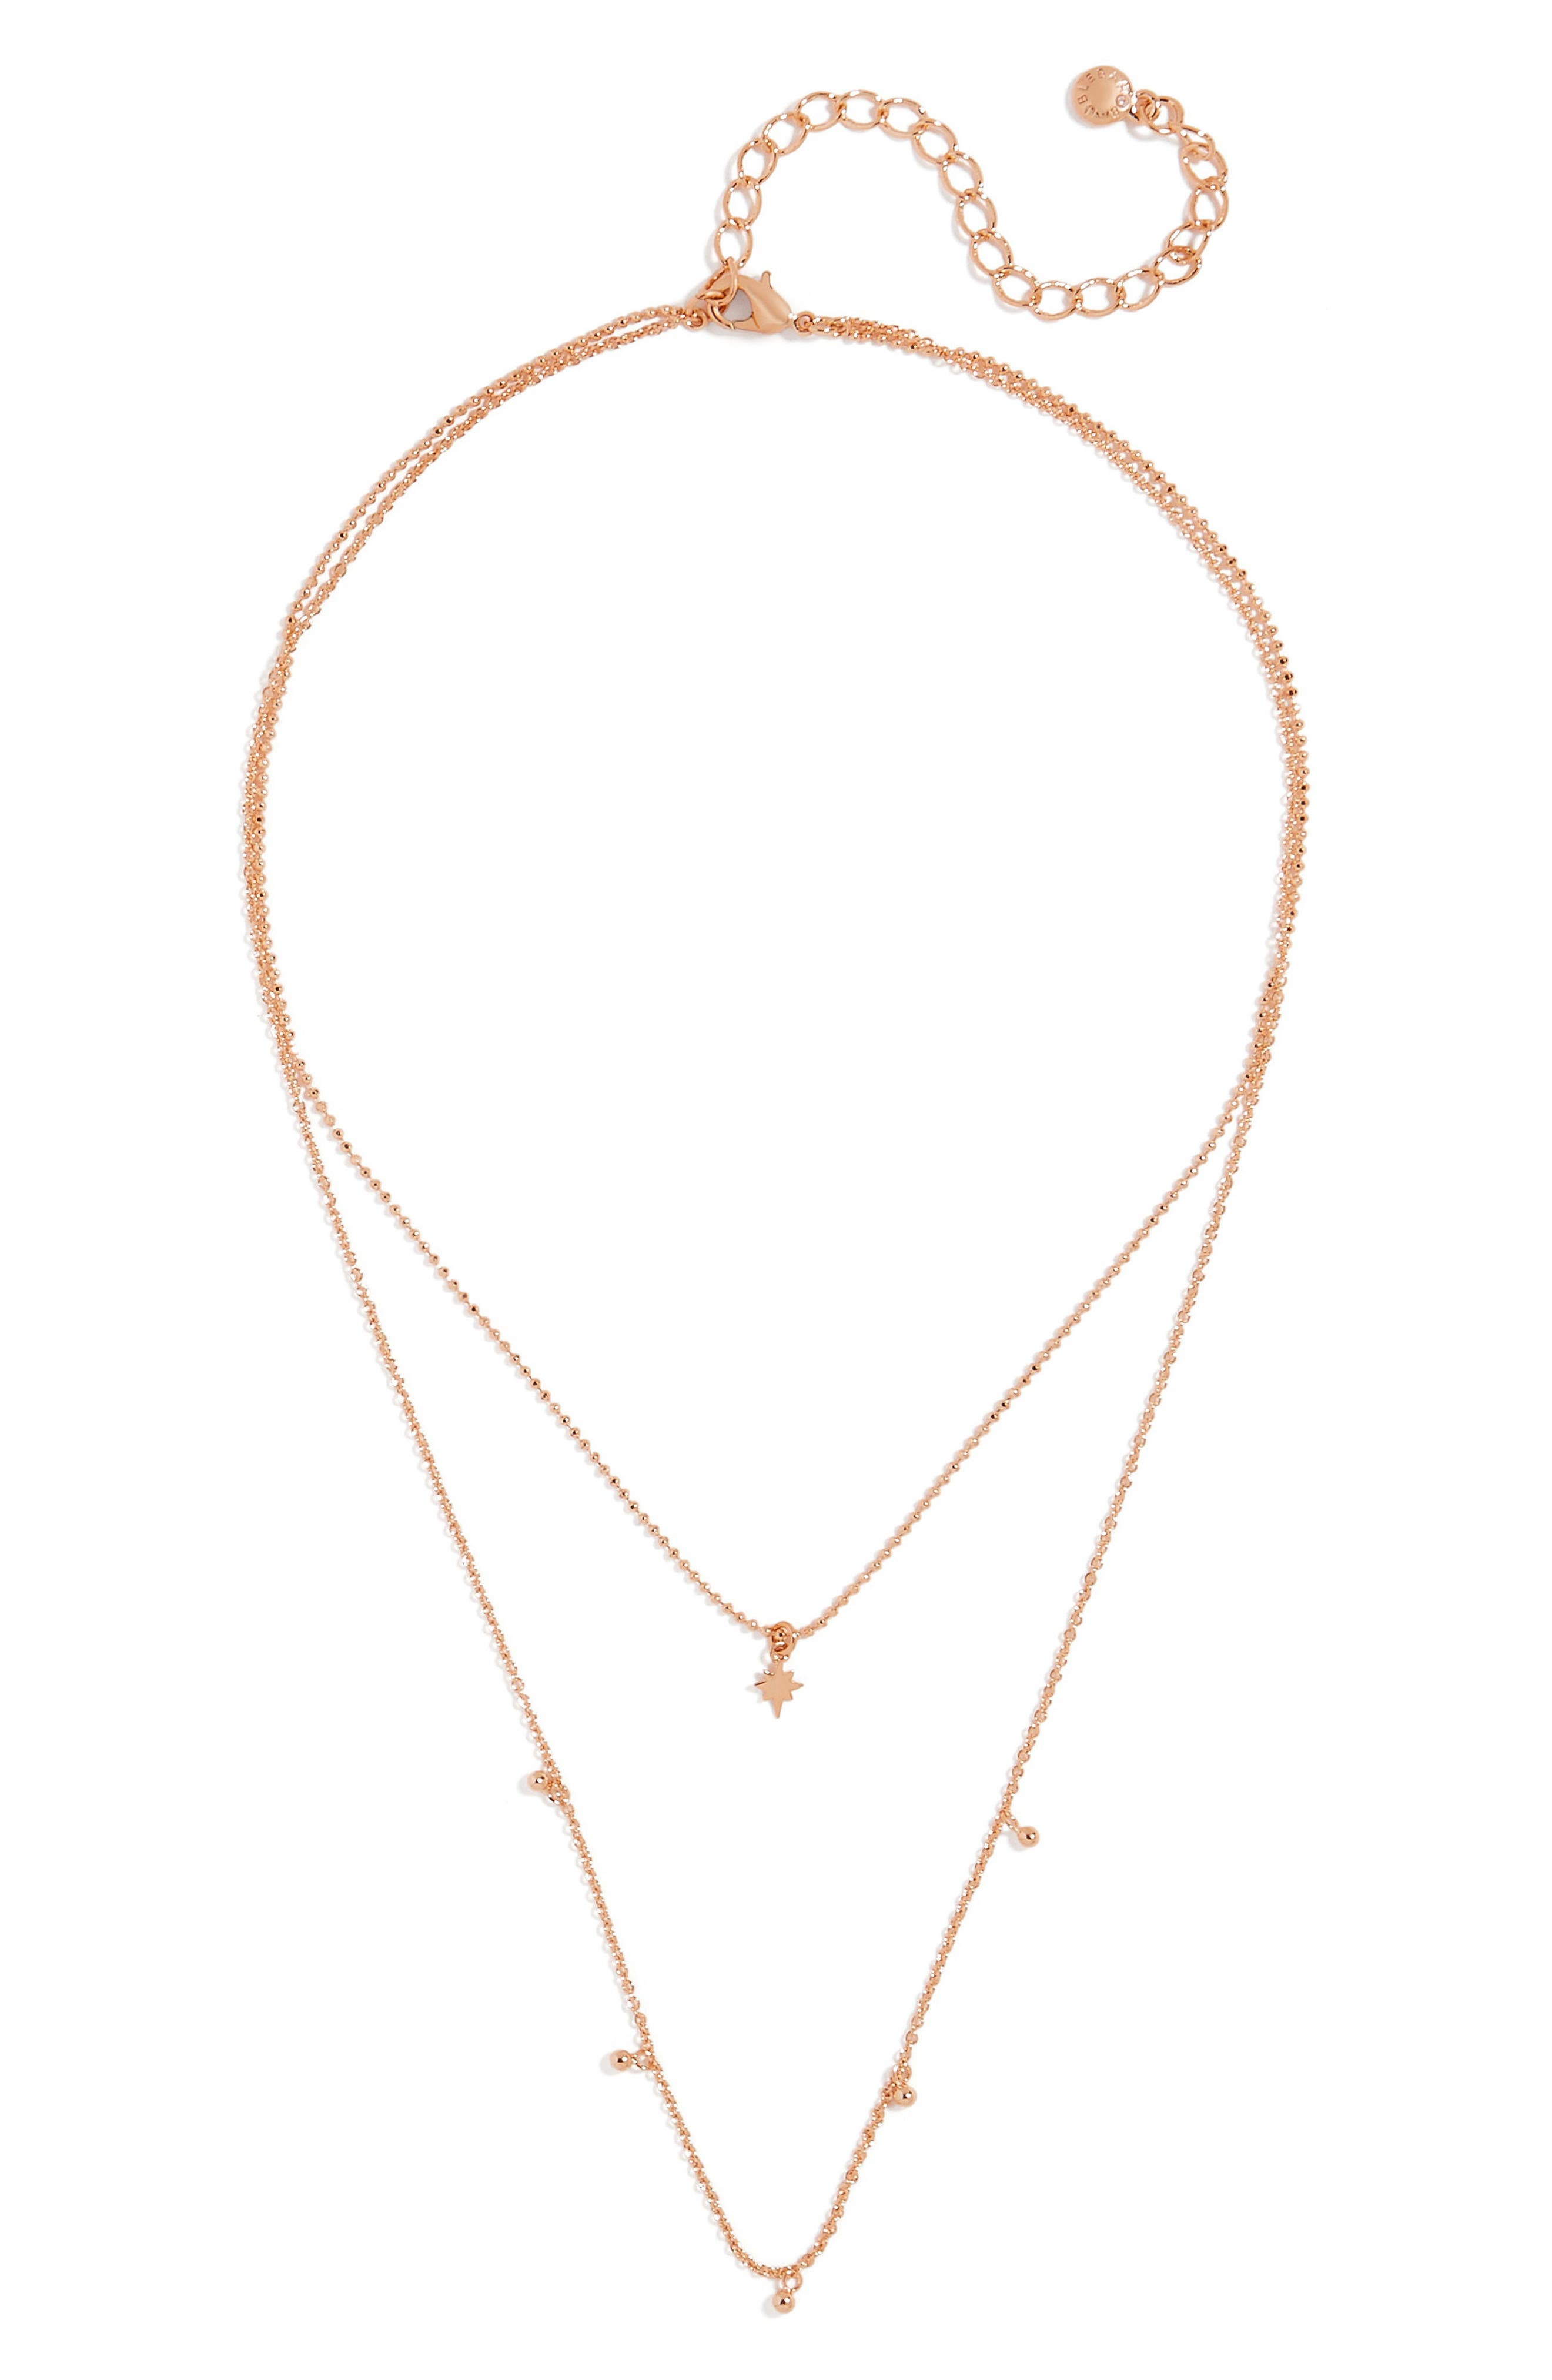 Multistrand Necklace,                             Main thumbnail 1, color,                             Rose Gold